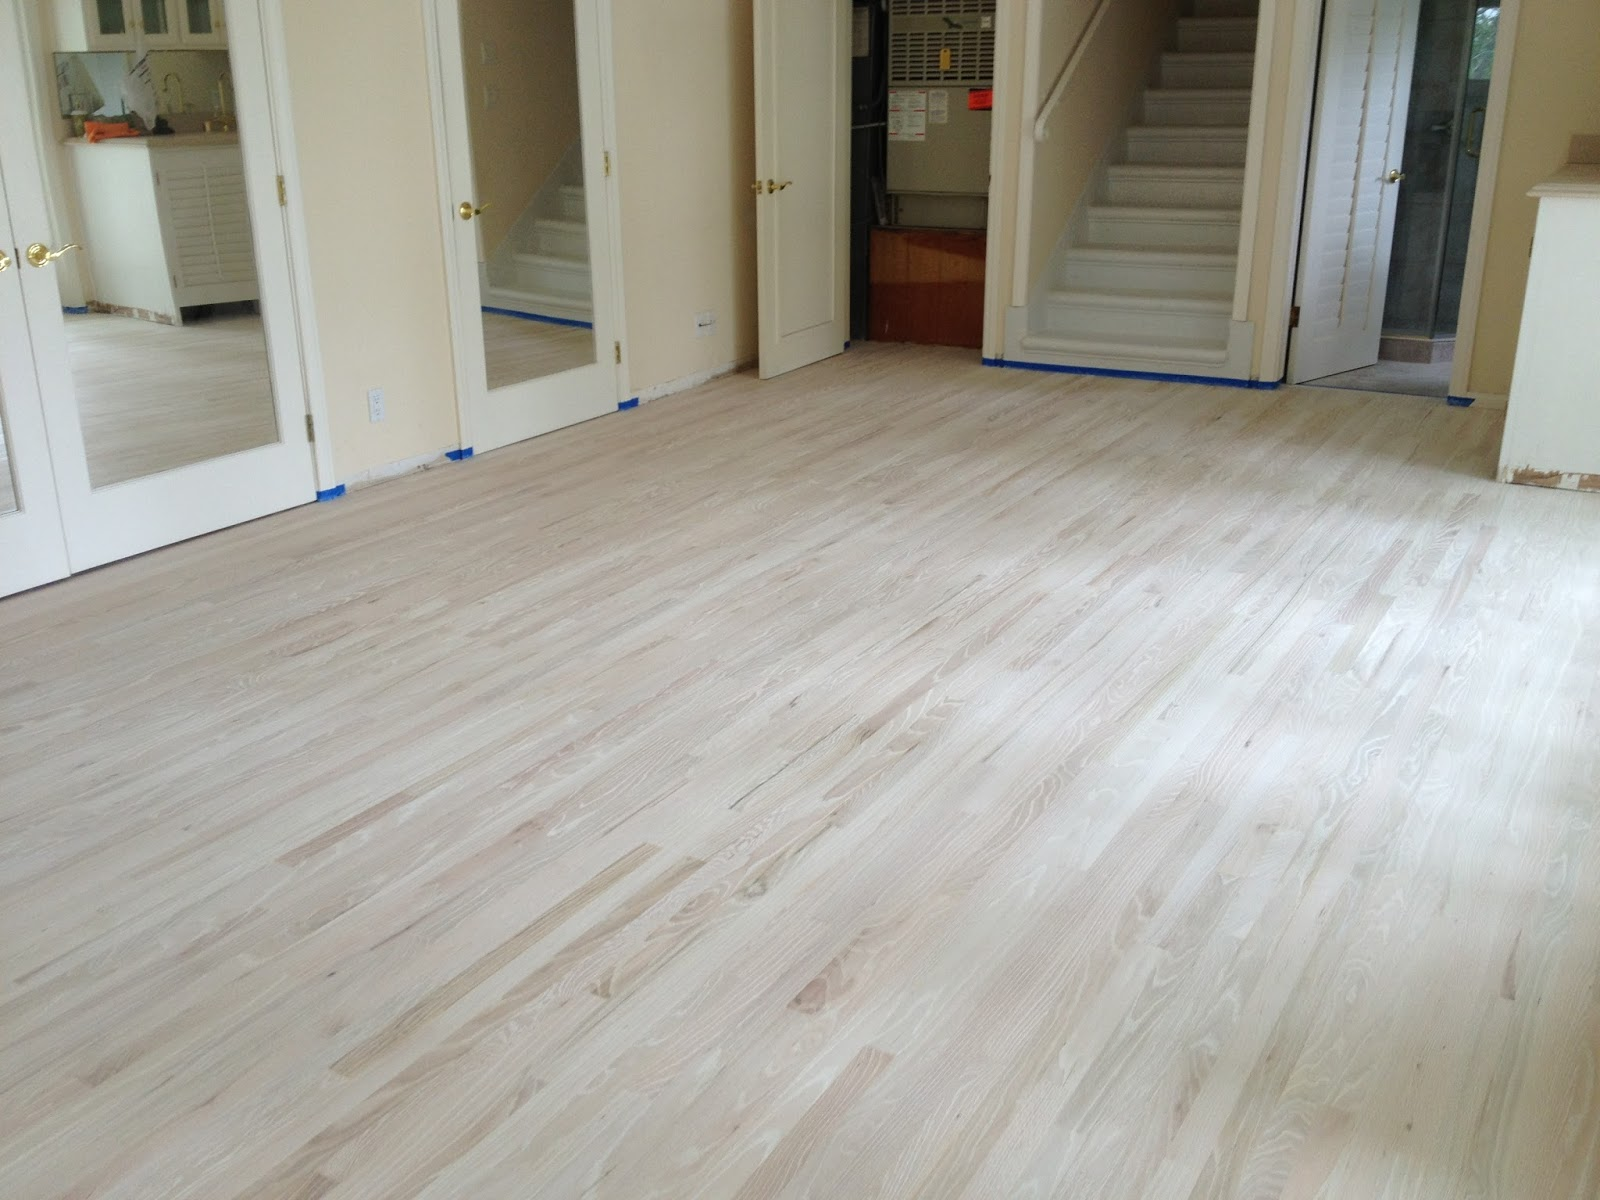 A hardwood flooring contractor string of thoughts White washed wood flooring